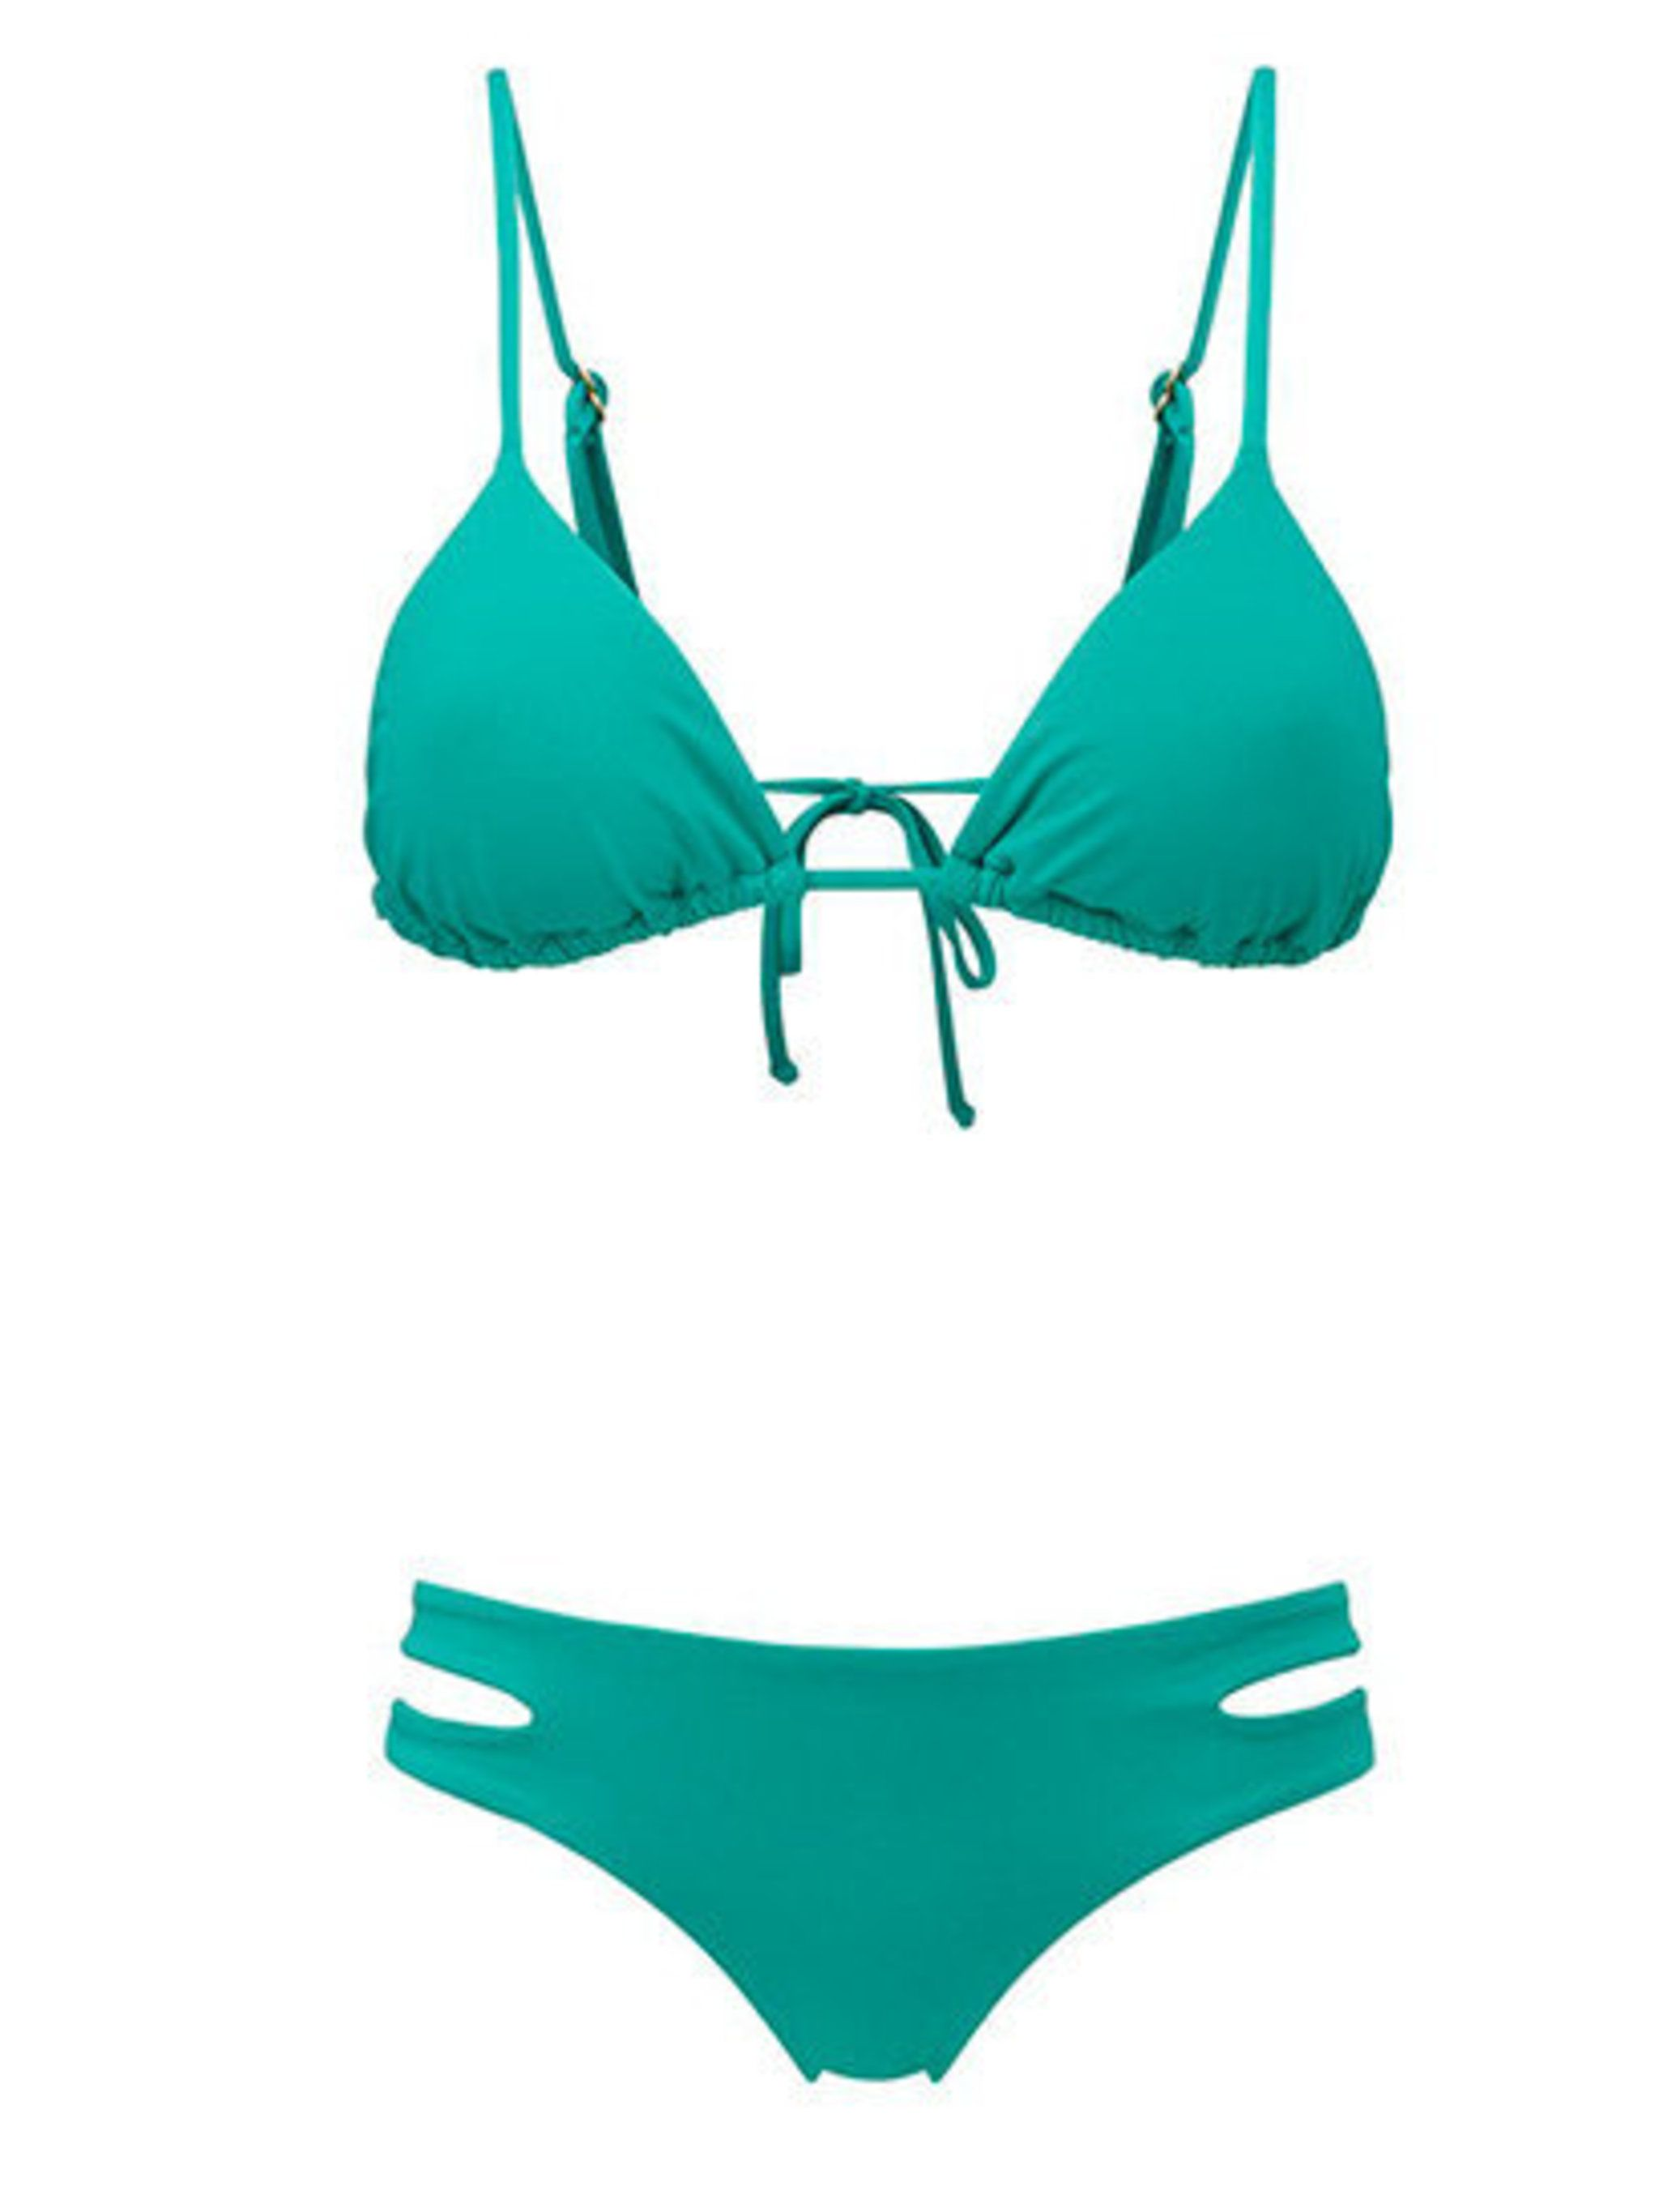 """<p>Keeping in with this season's pastel trend, Fashion Assistant Espe De La Fuente picks this Rigby and Peller <a href=""""http://www.rigbyandpeller.co.uk/l*space-sensual-solids-triangle-cup-bikini-top/p61144.aspx"""">bikini top</a>, £58.95 and cut away <a href"""